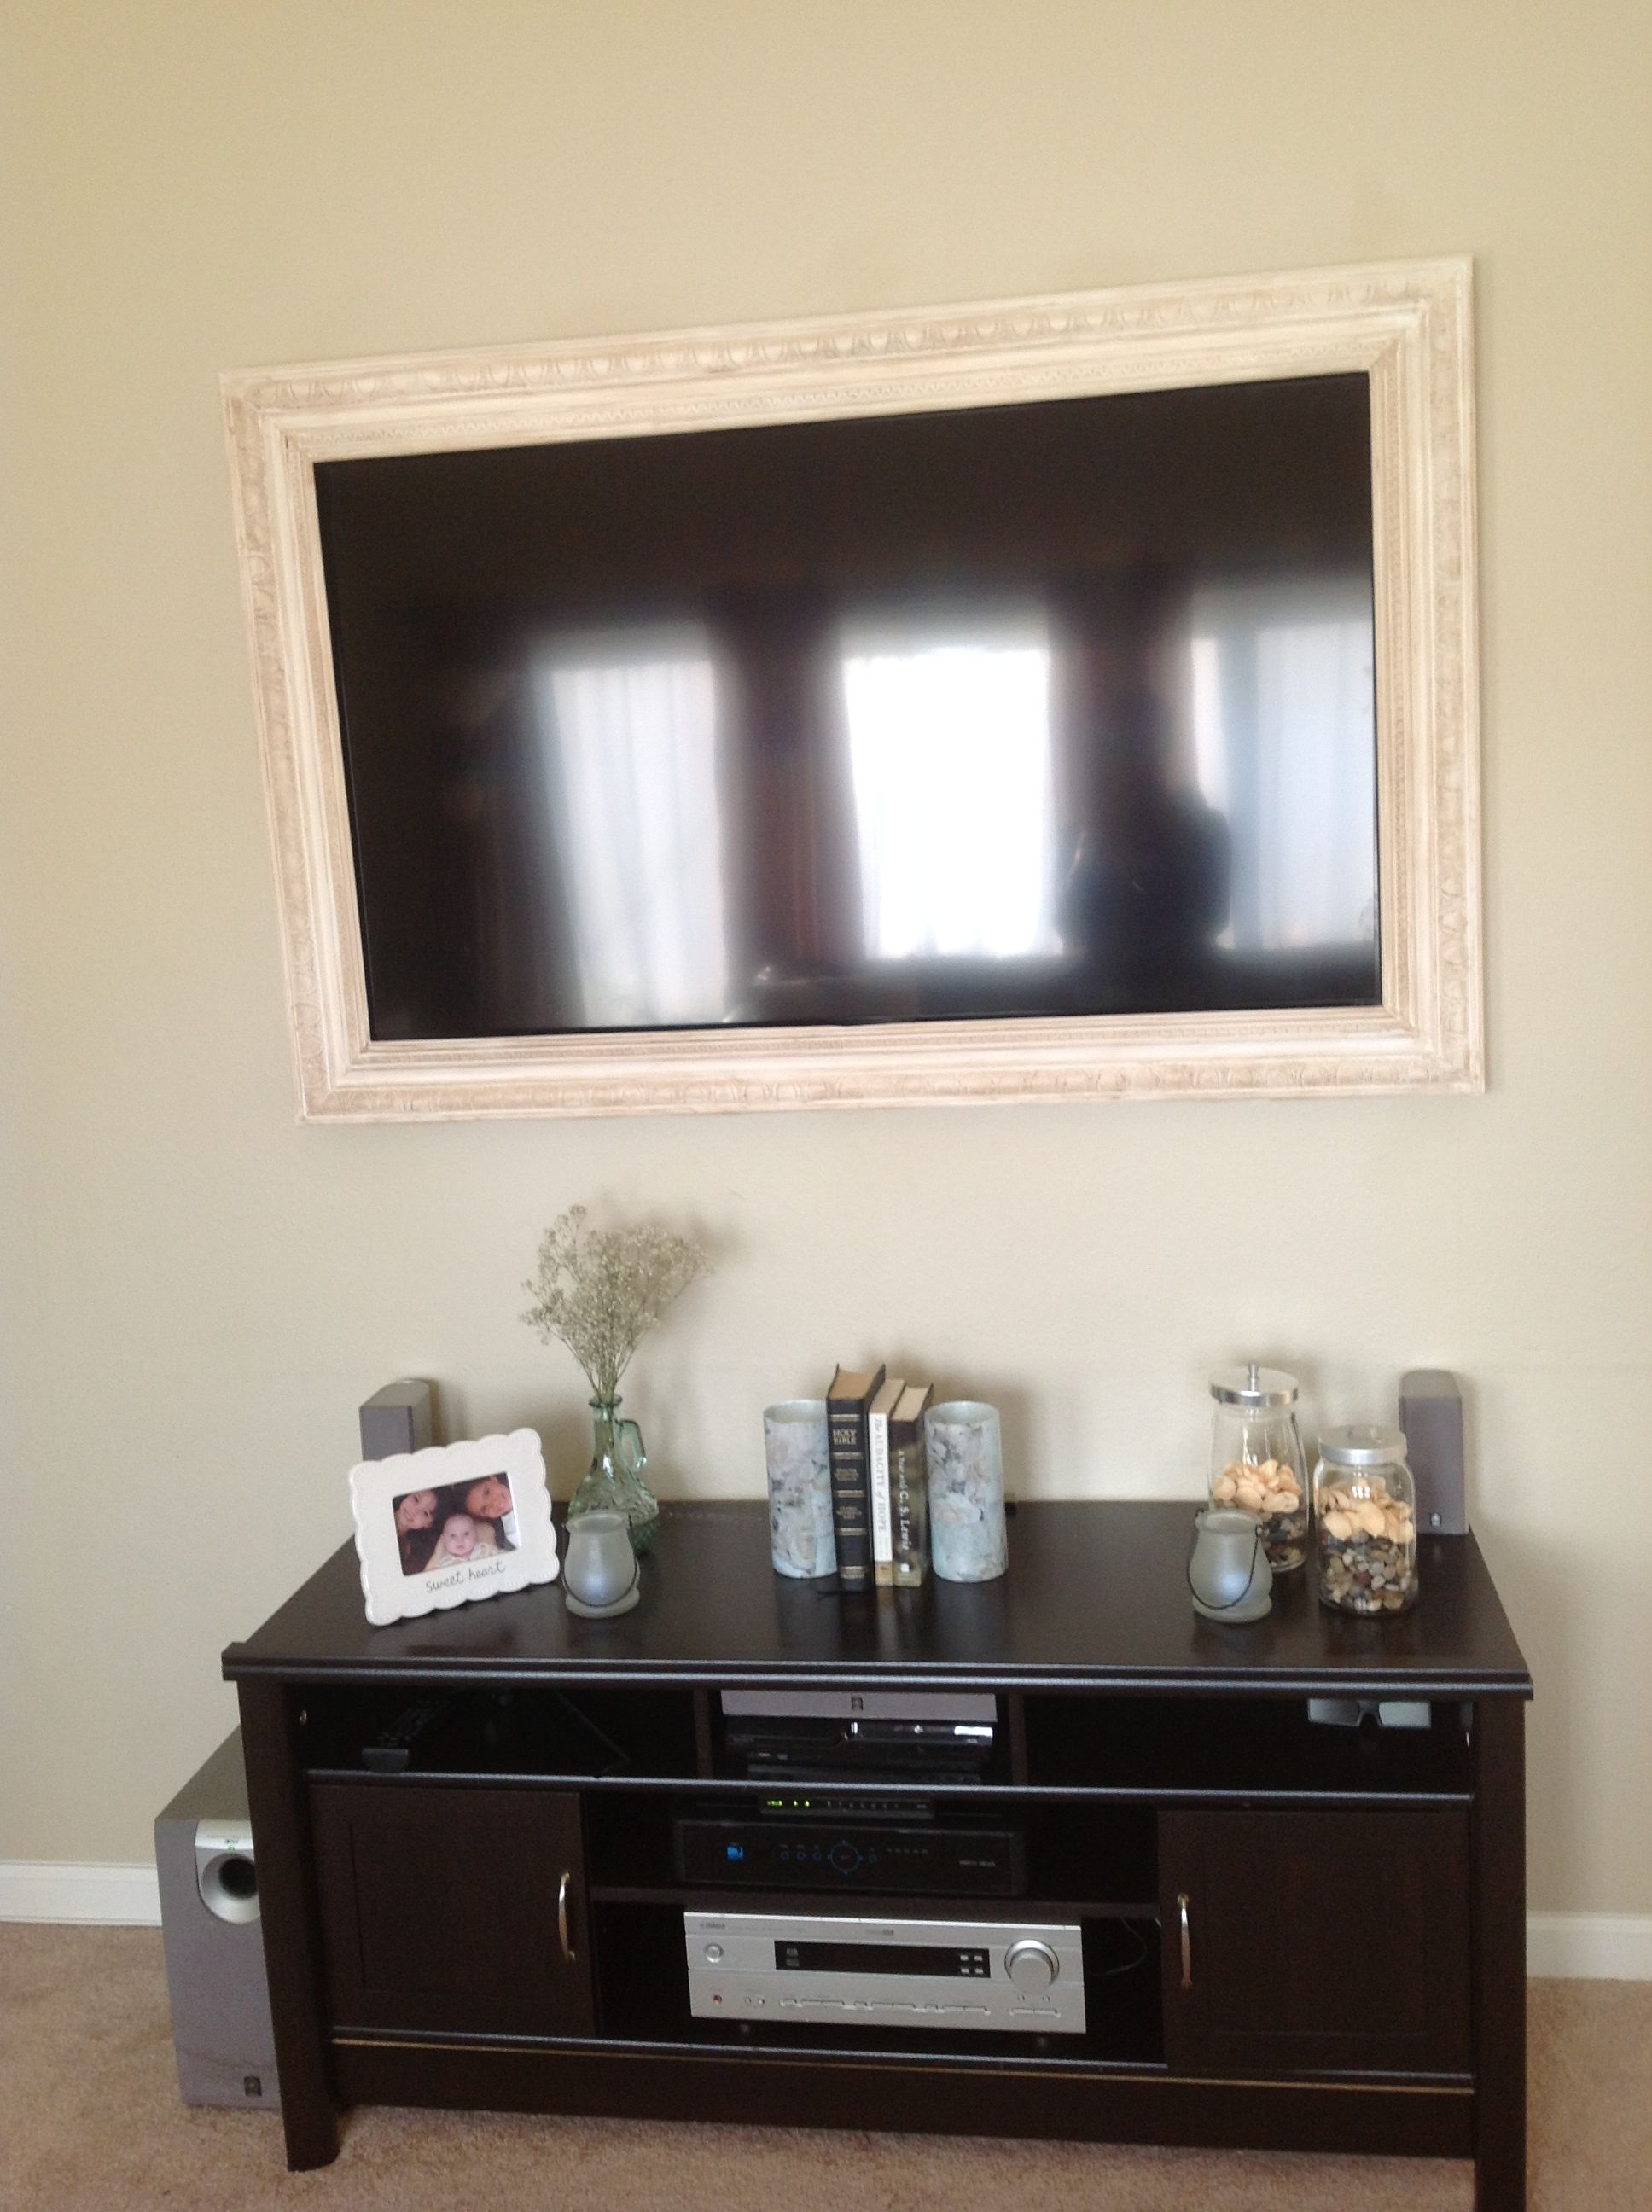 Flat screen tv framehubby made it took a long time to